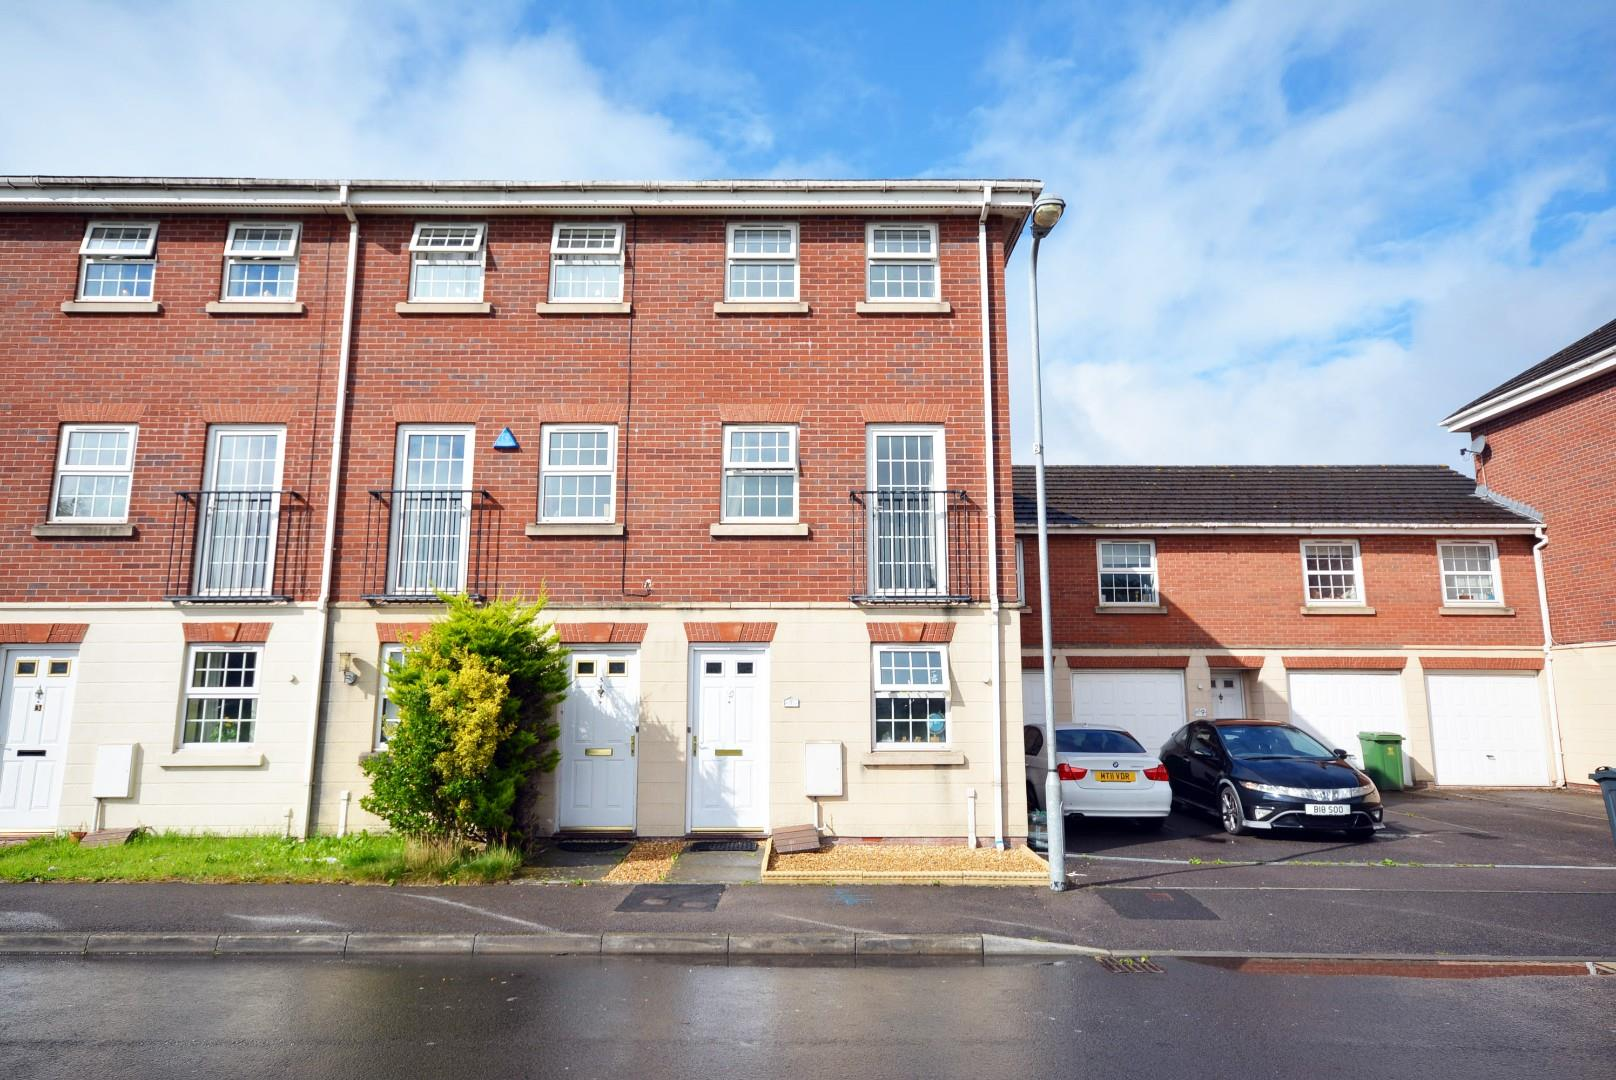 3 bed end of terrace house for sale in Beaufort Square, Cardiff, CF24